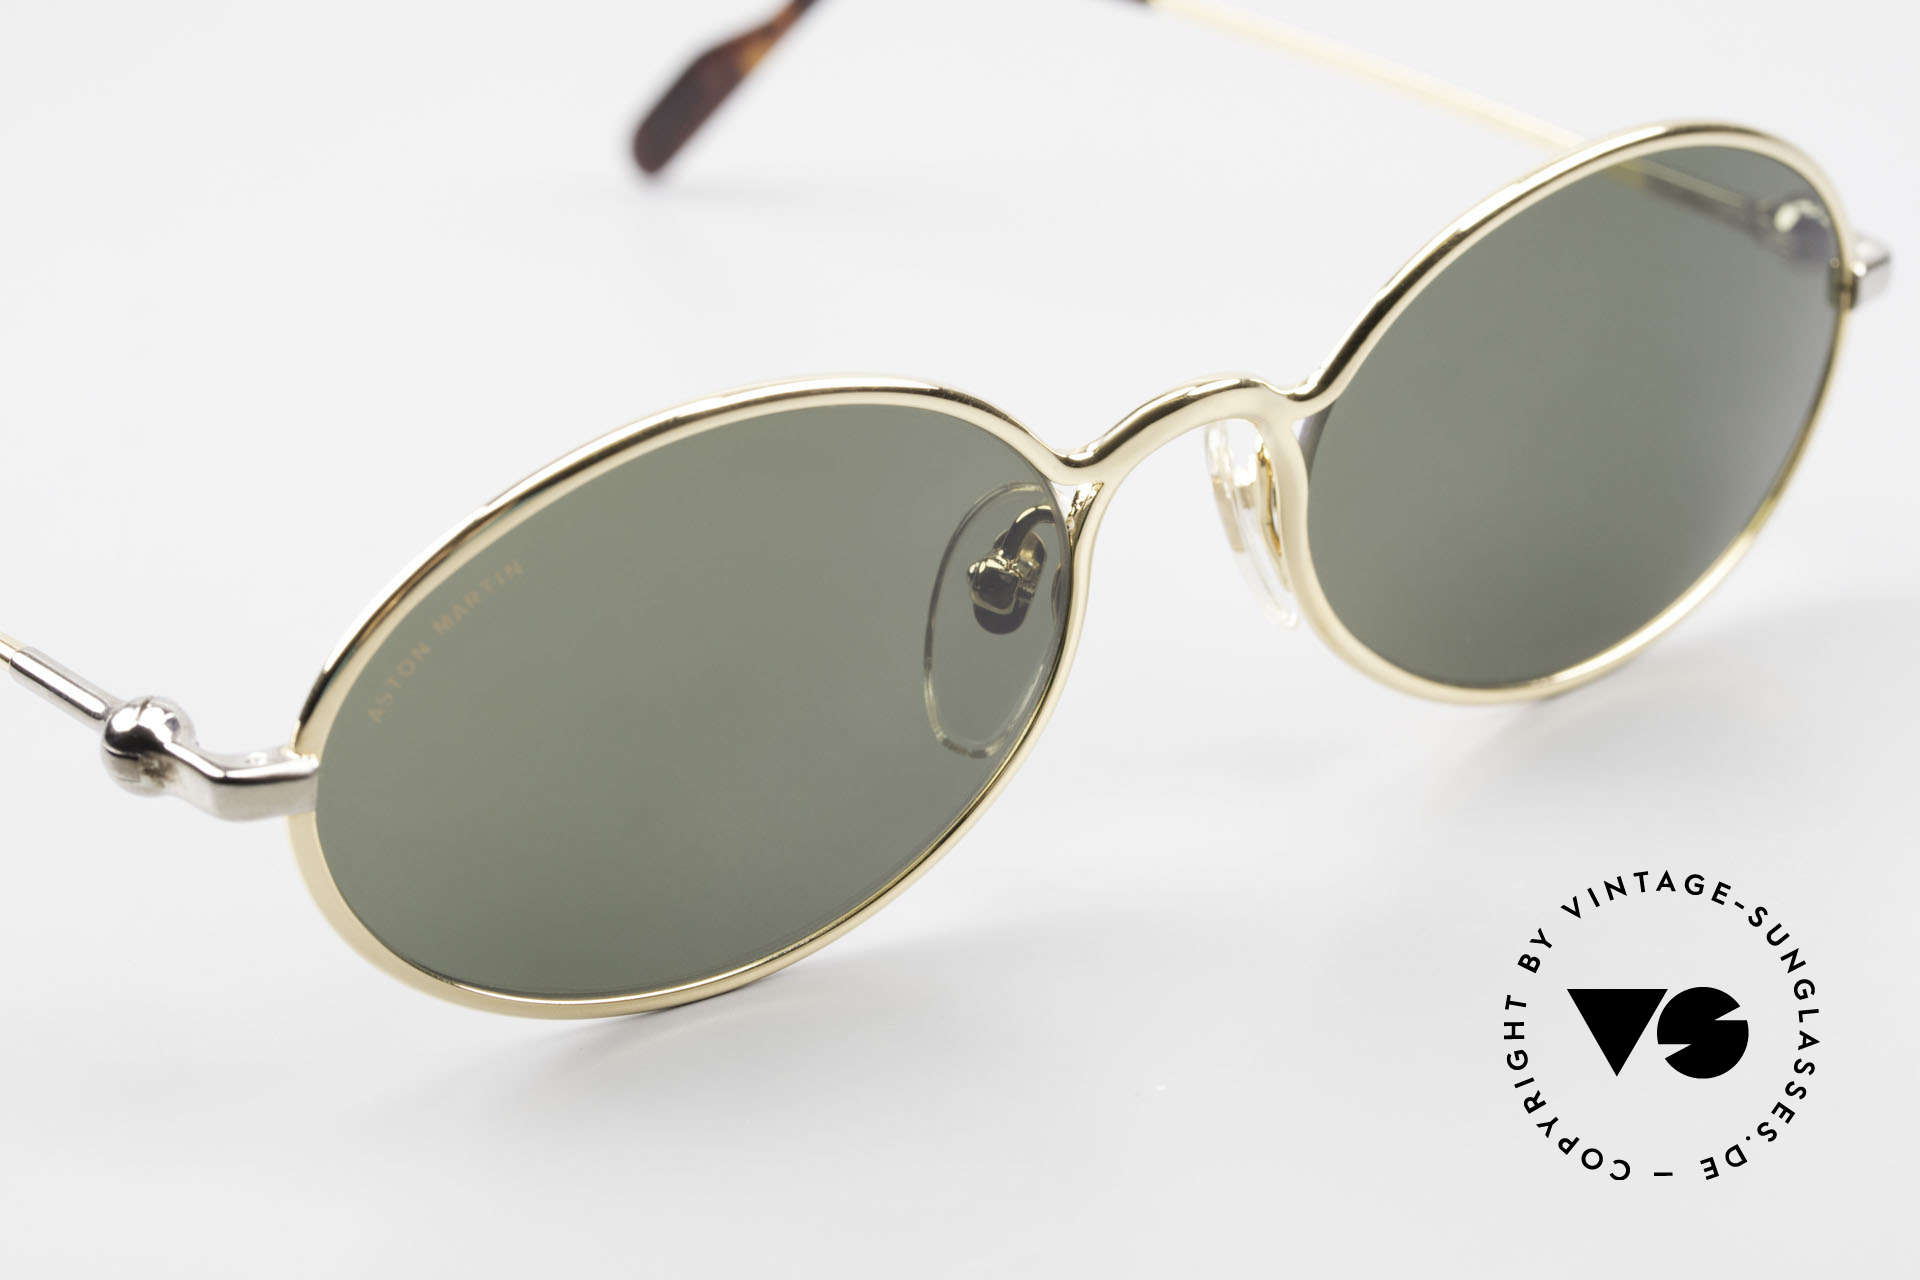 Aston Martin AM13 Oval Sunglasses James Bond, non-reflection mineral lenses with Aston Martin lettering, Made for Men